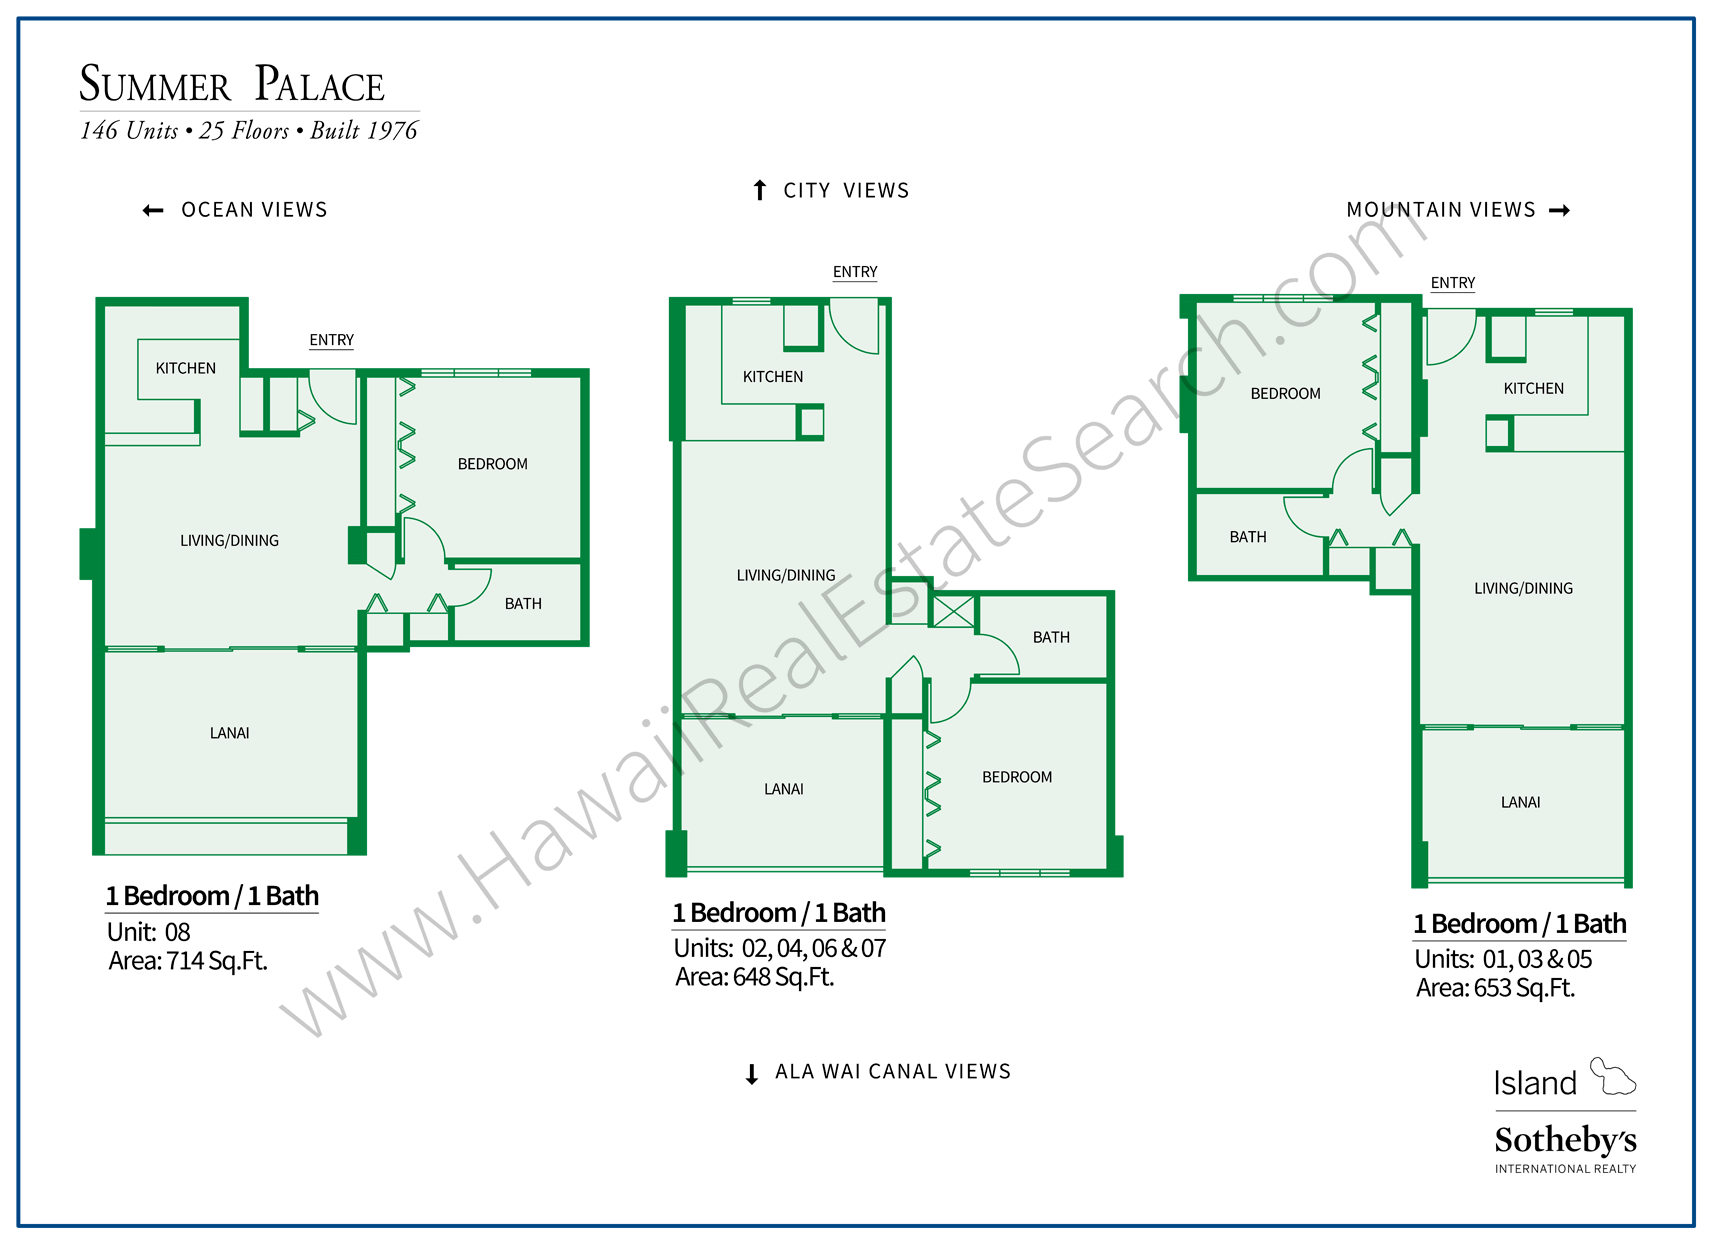 Summer Palace Floor Plans 2018